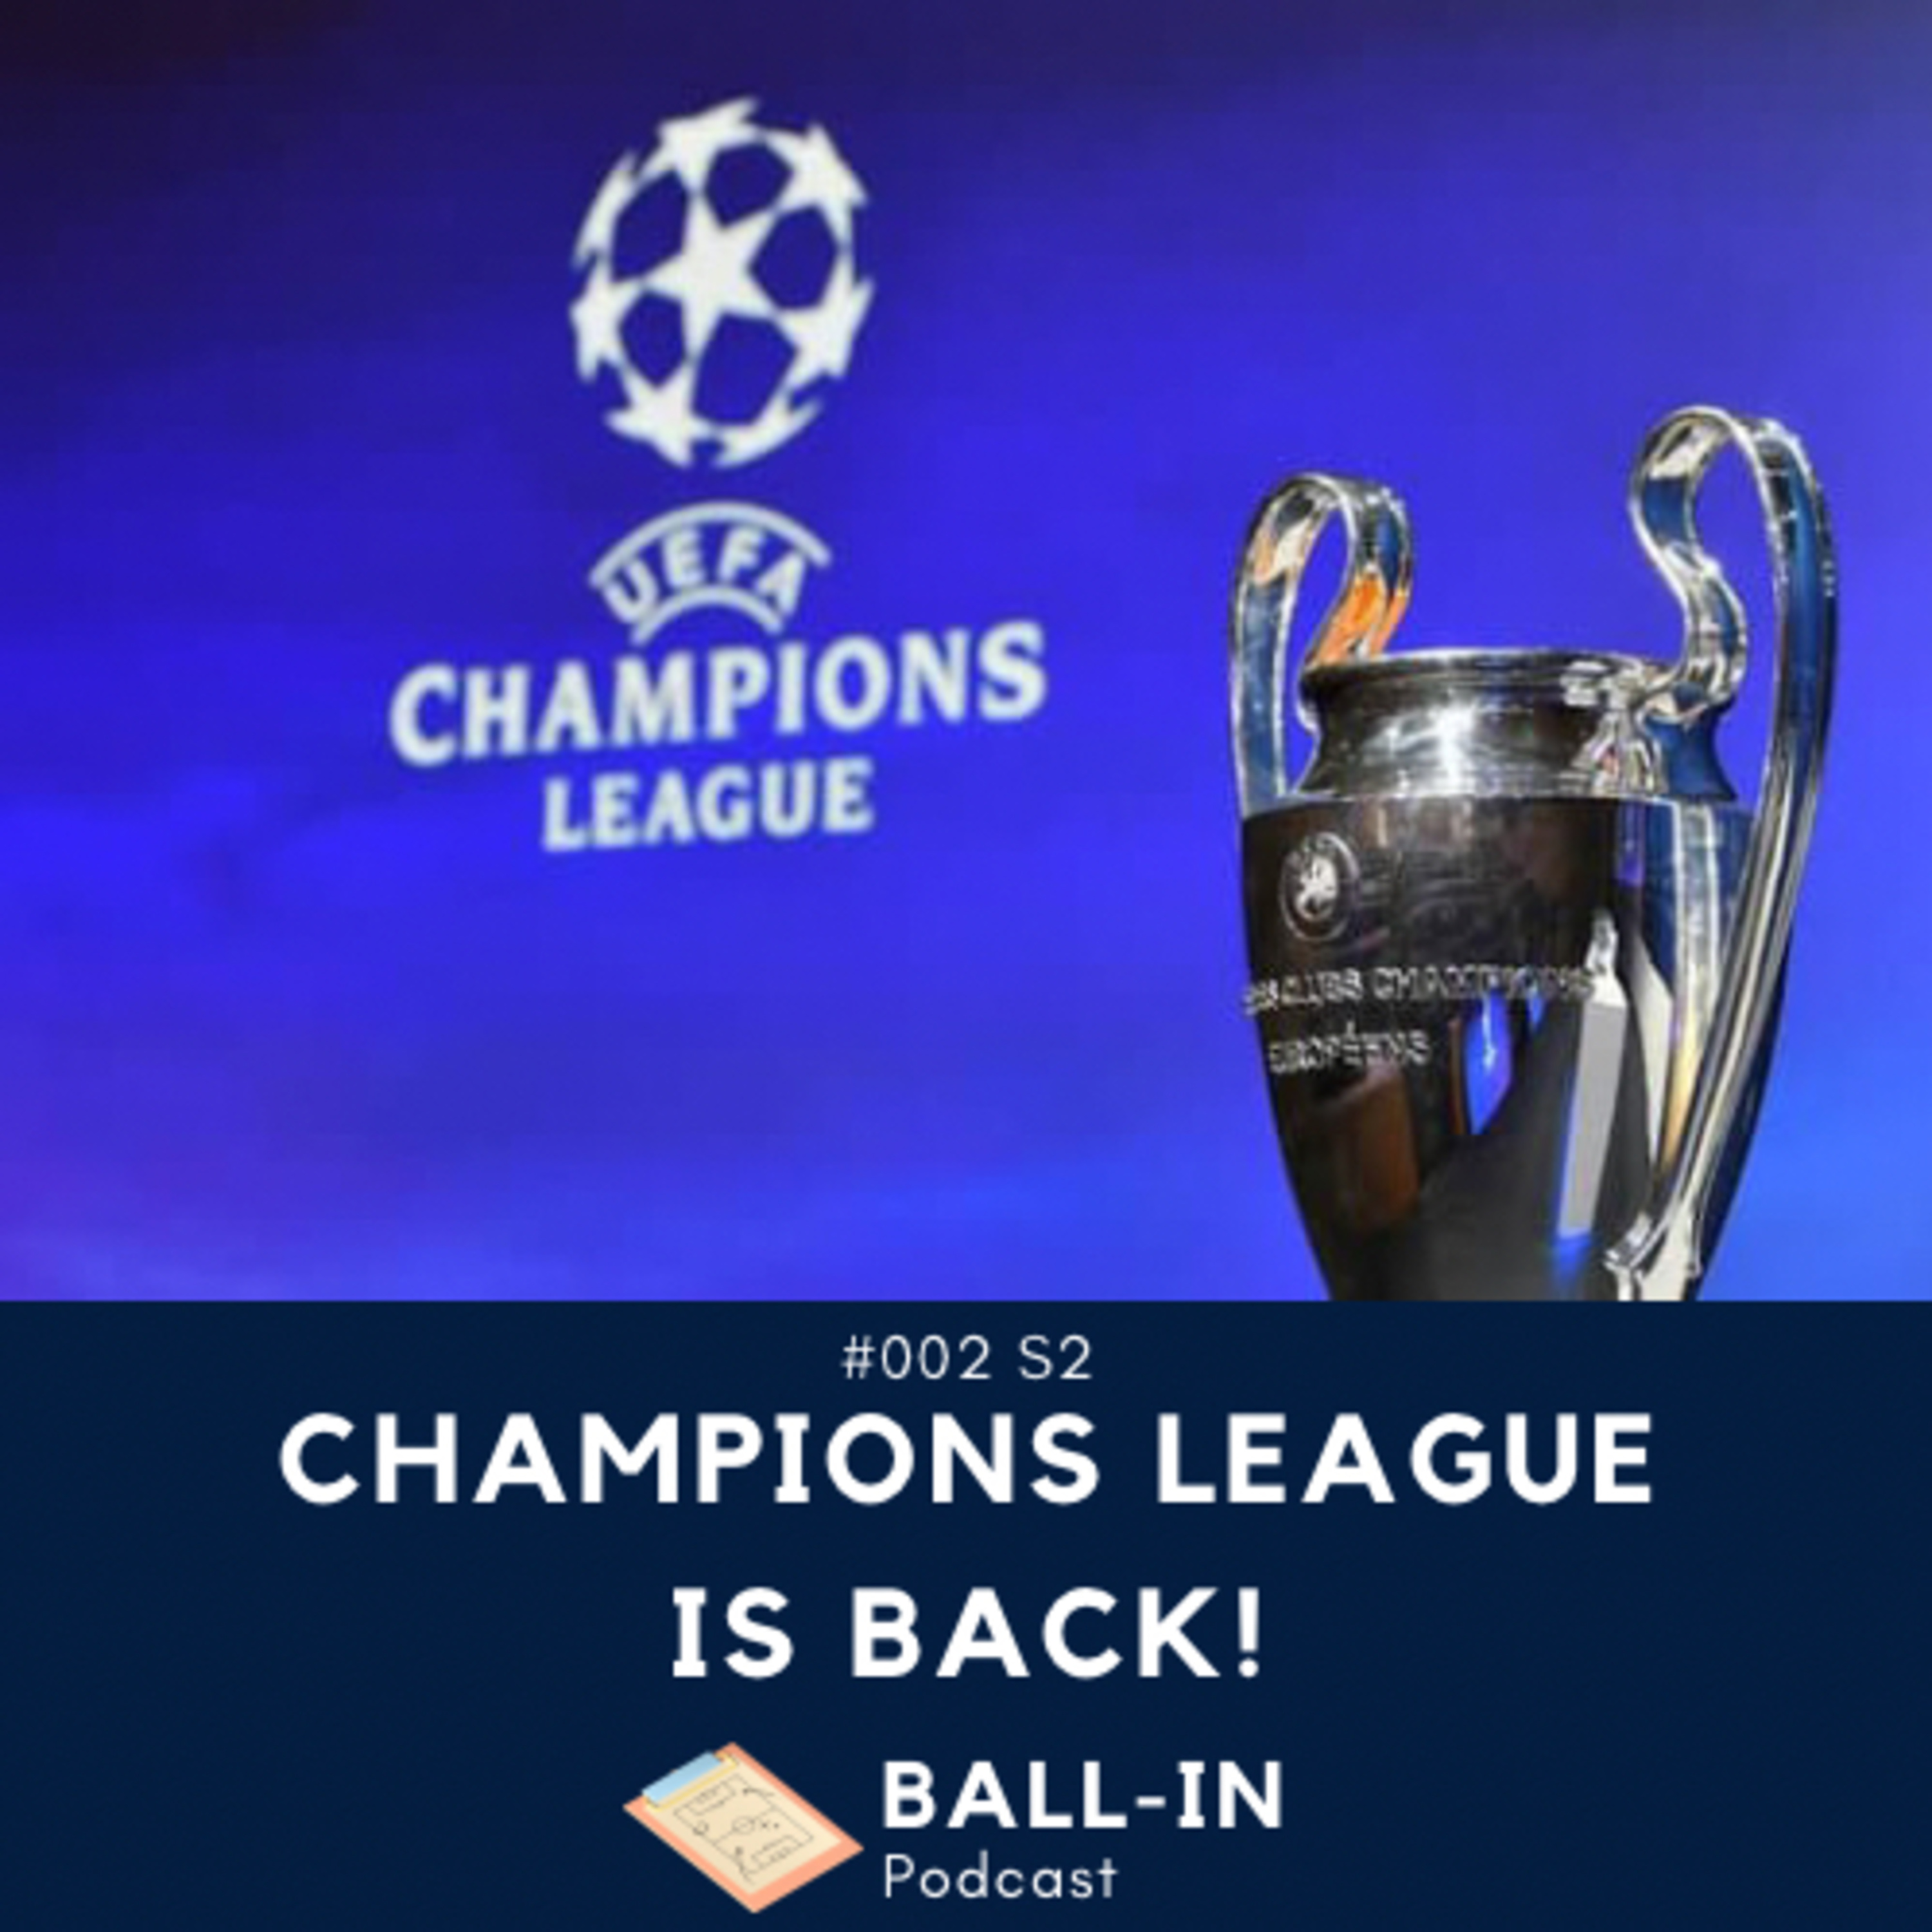 #002 S2: Champions League is back!